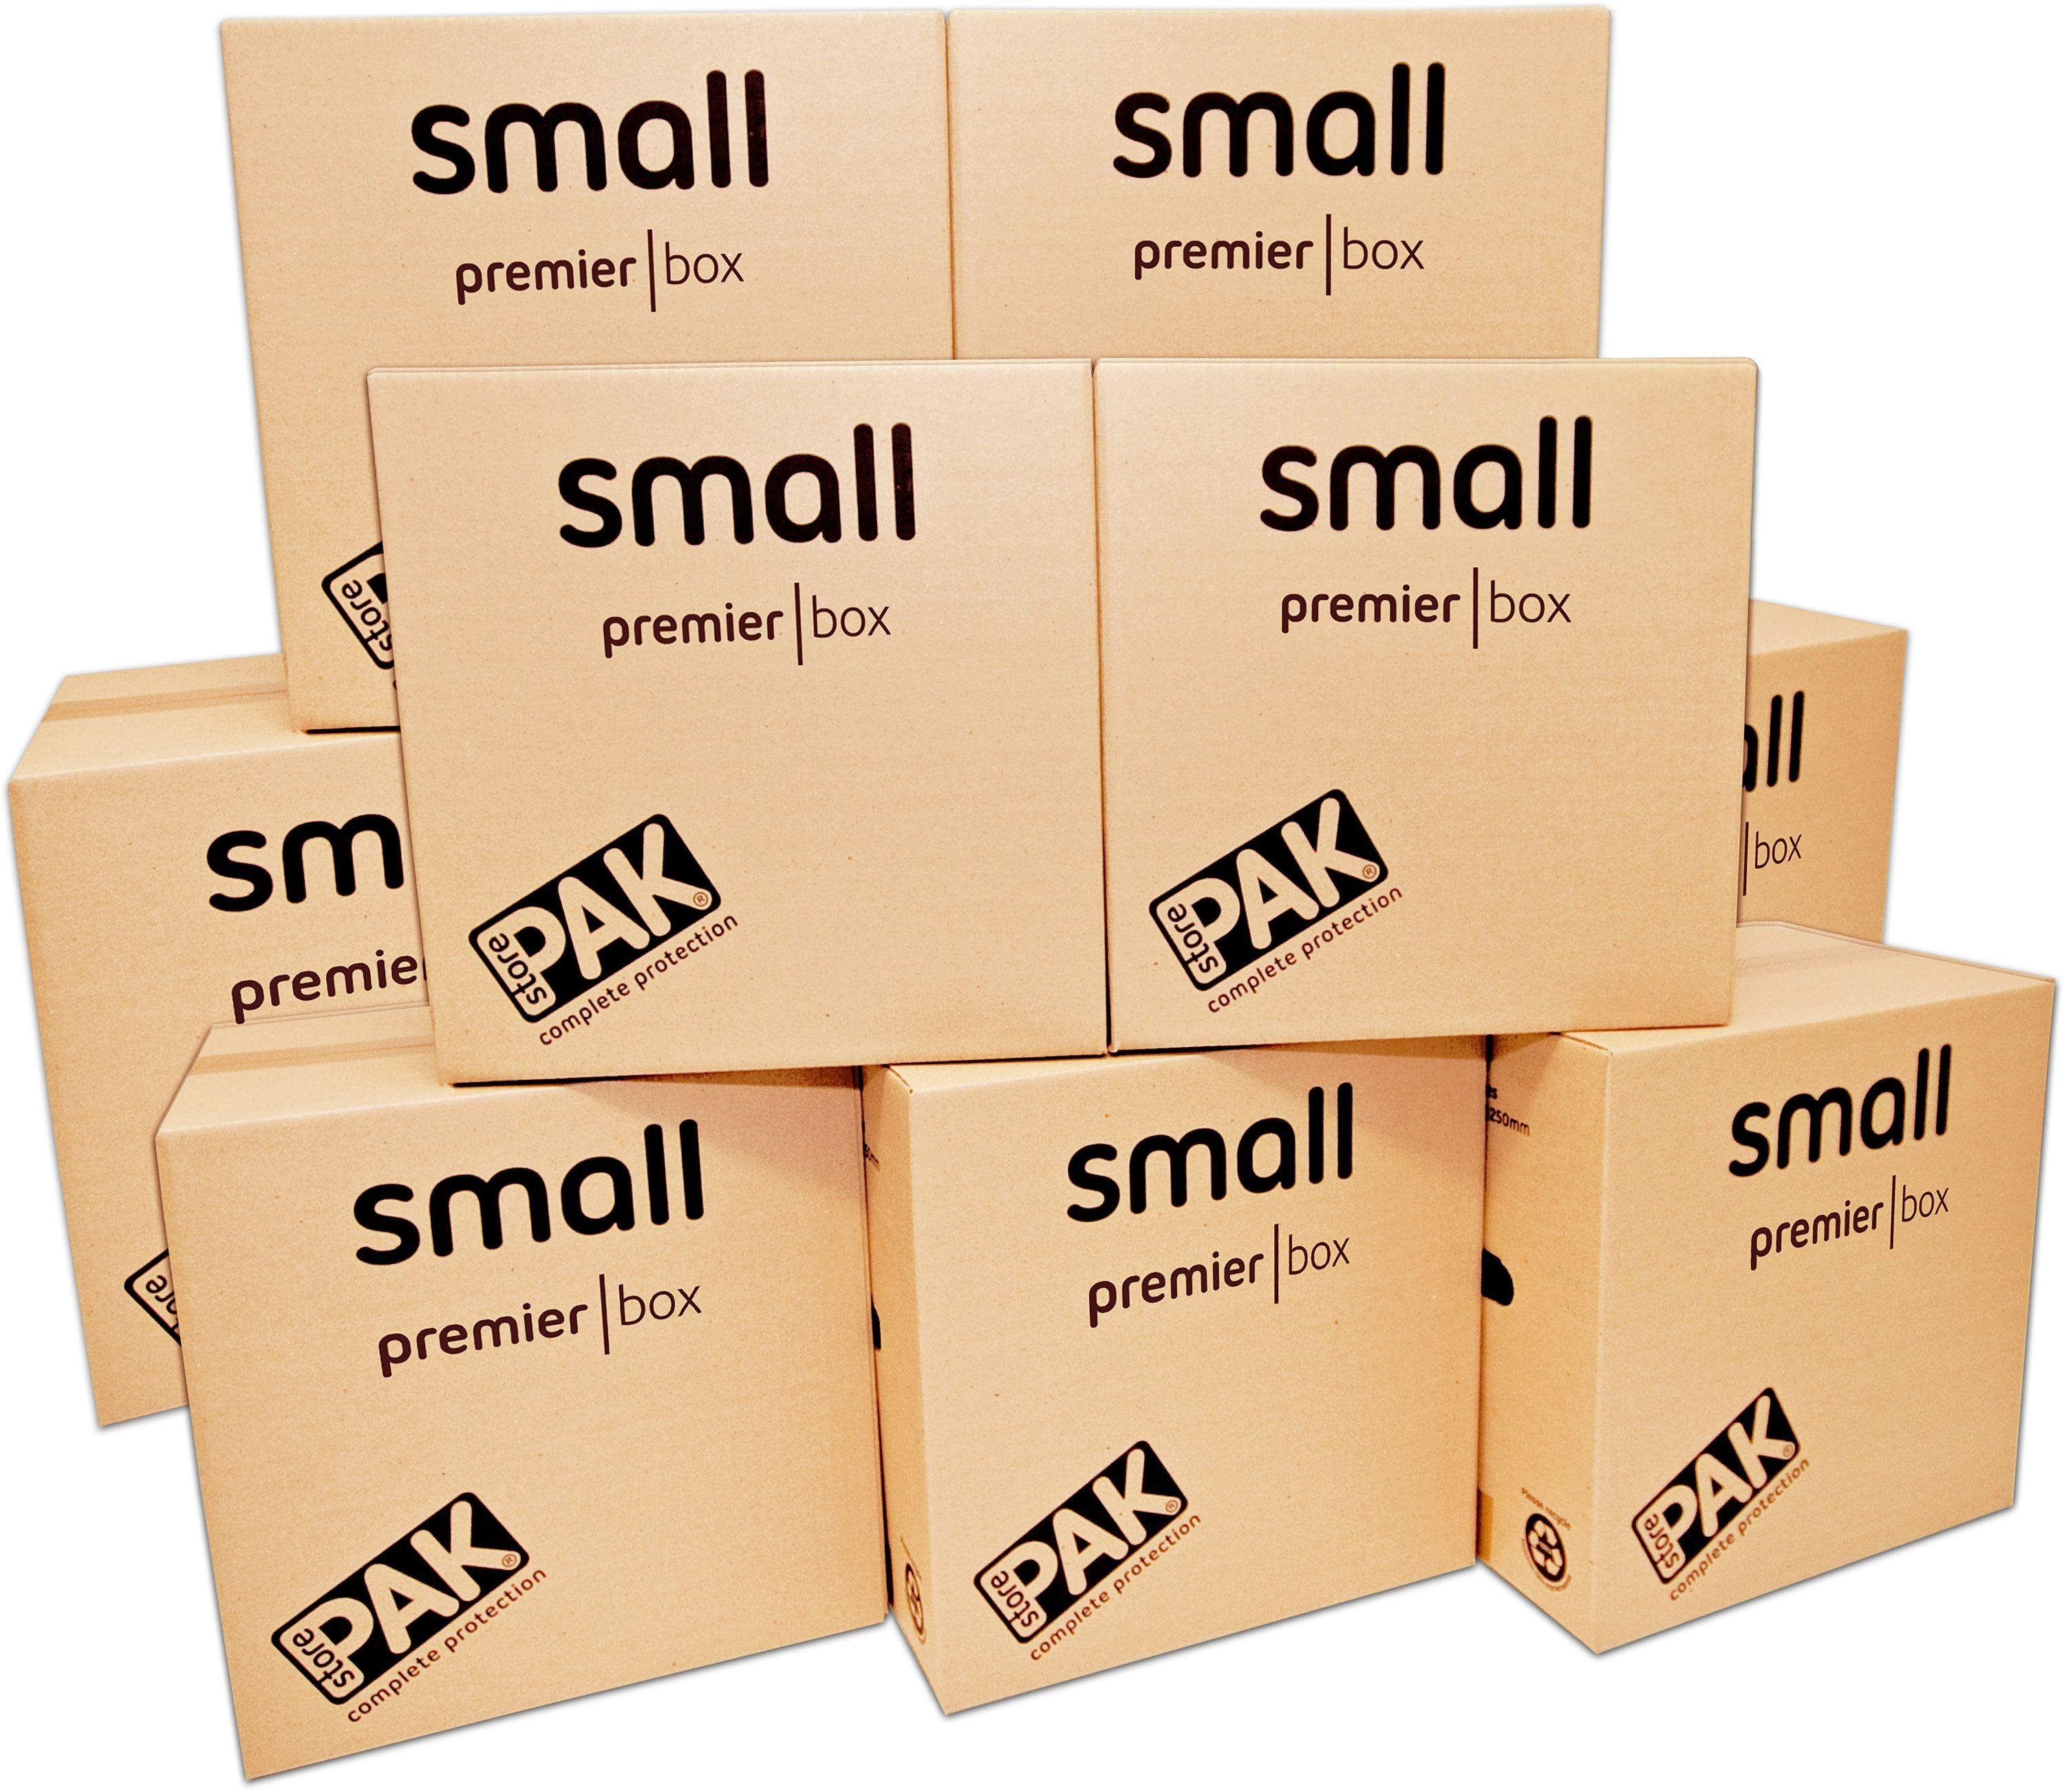 StorePAK Heavy Duty Small Cardboard Boxes - Set of 10